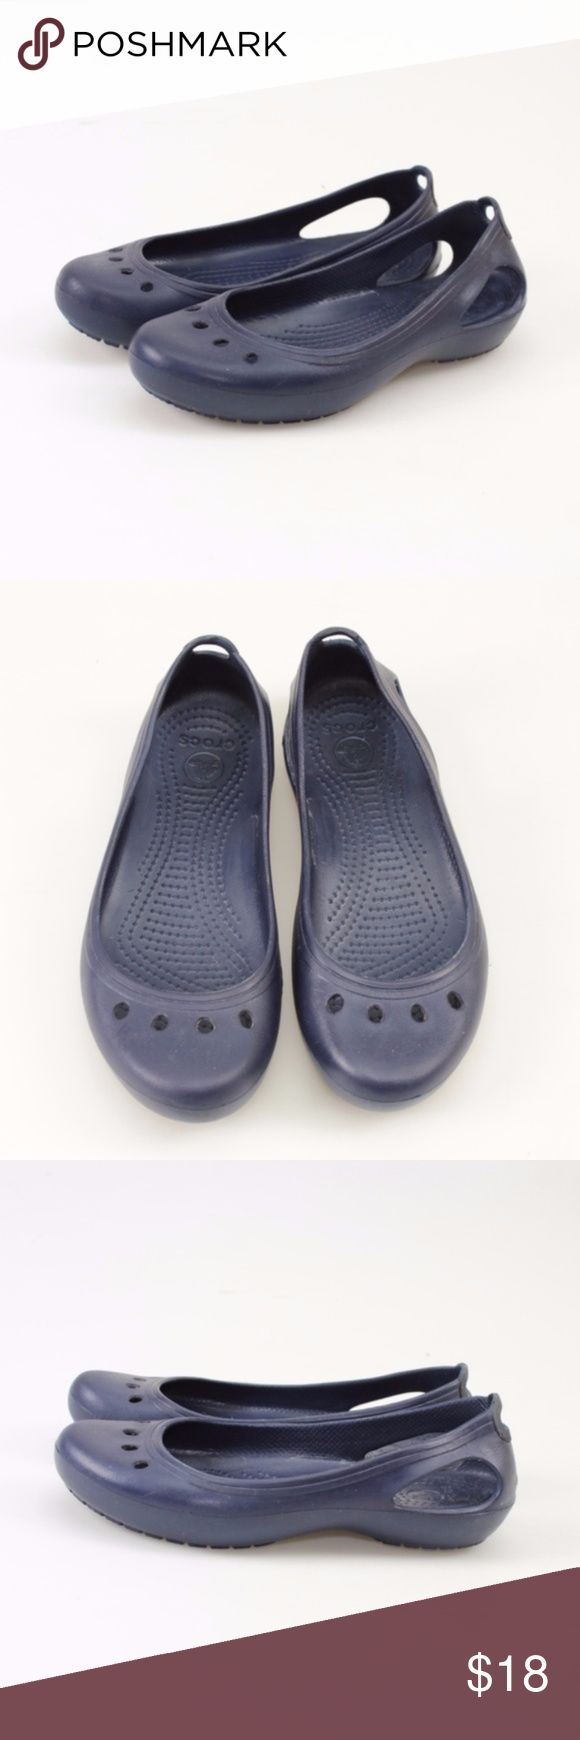 Crocs Kadee Navy Slip-On Flats // Size 6 A pretty, feminine take on the Crocs Clog these slip-on shoes are ideal for any casual occasion! Croslite footbed molds to your feet for a custom fit. Ventilation holes keep you cool and comfortable. Non-marking Croslite outsole offers peace of mind.  These shoes were a store return, so they do not come in a box. They have been worn, but are in great condition and have been disinfected. #12WKSD // Crocs // Kadee // Flats // Slip Ons // All Navy CROCS…